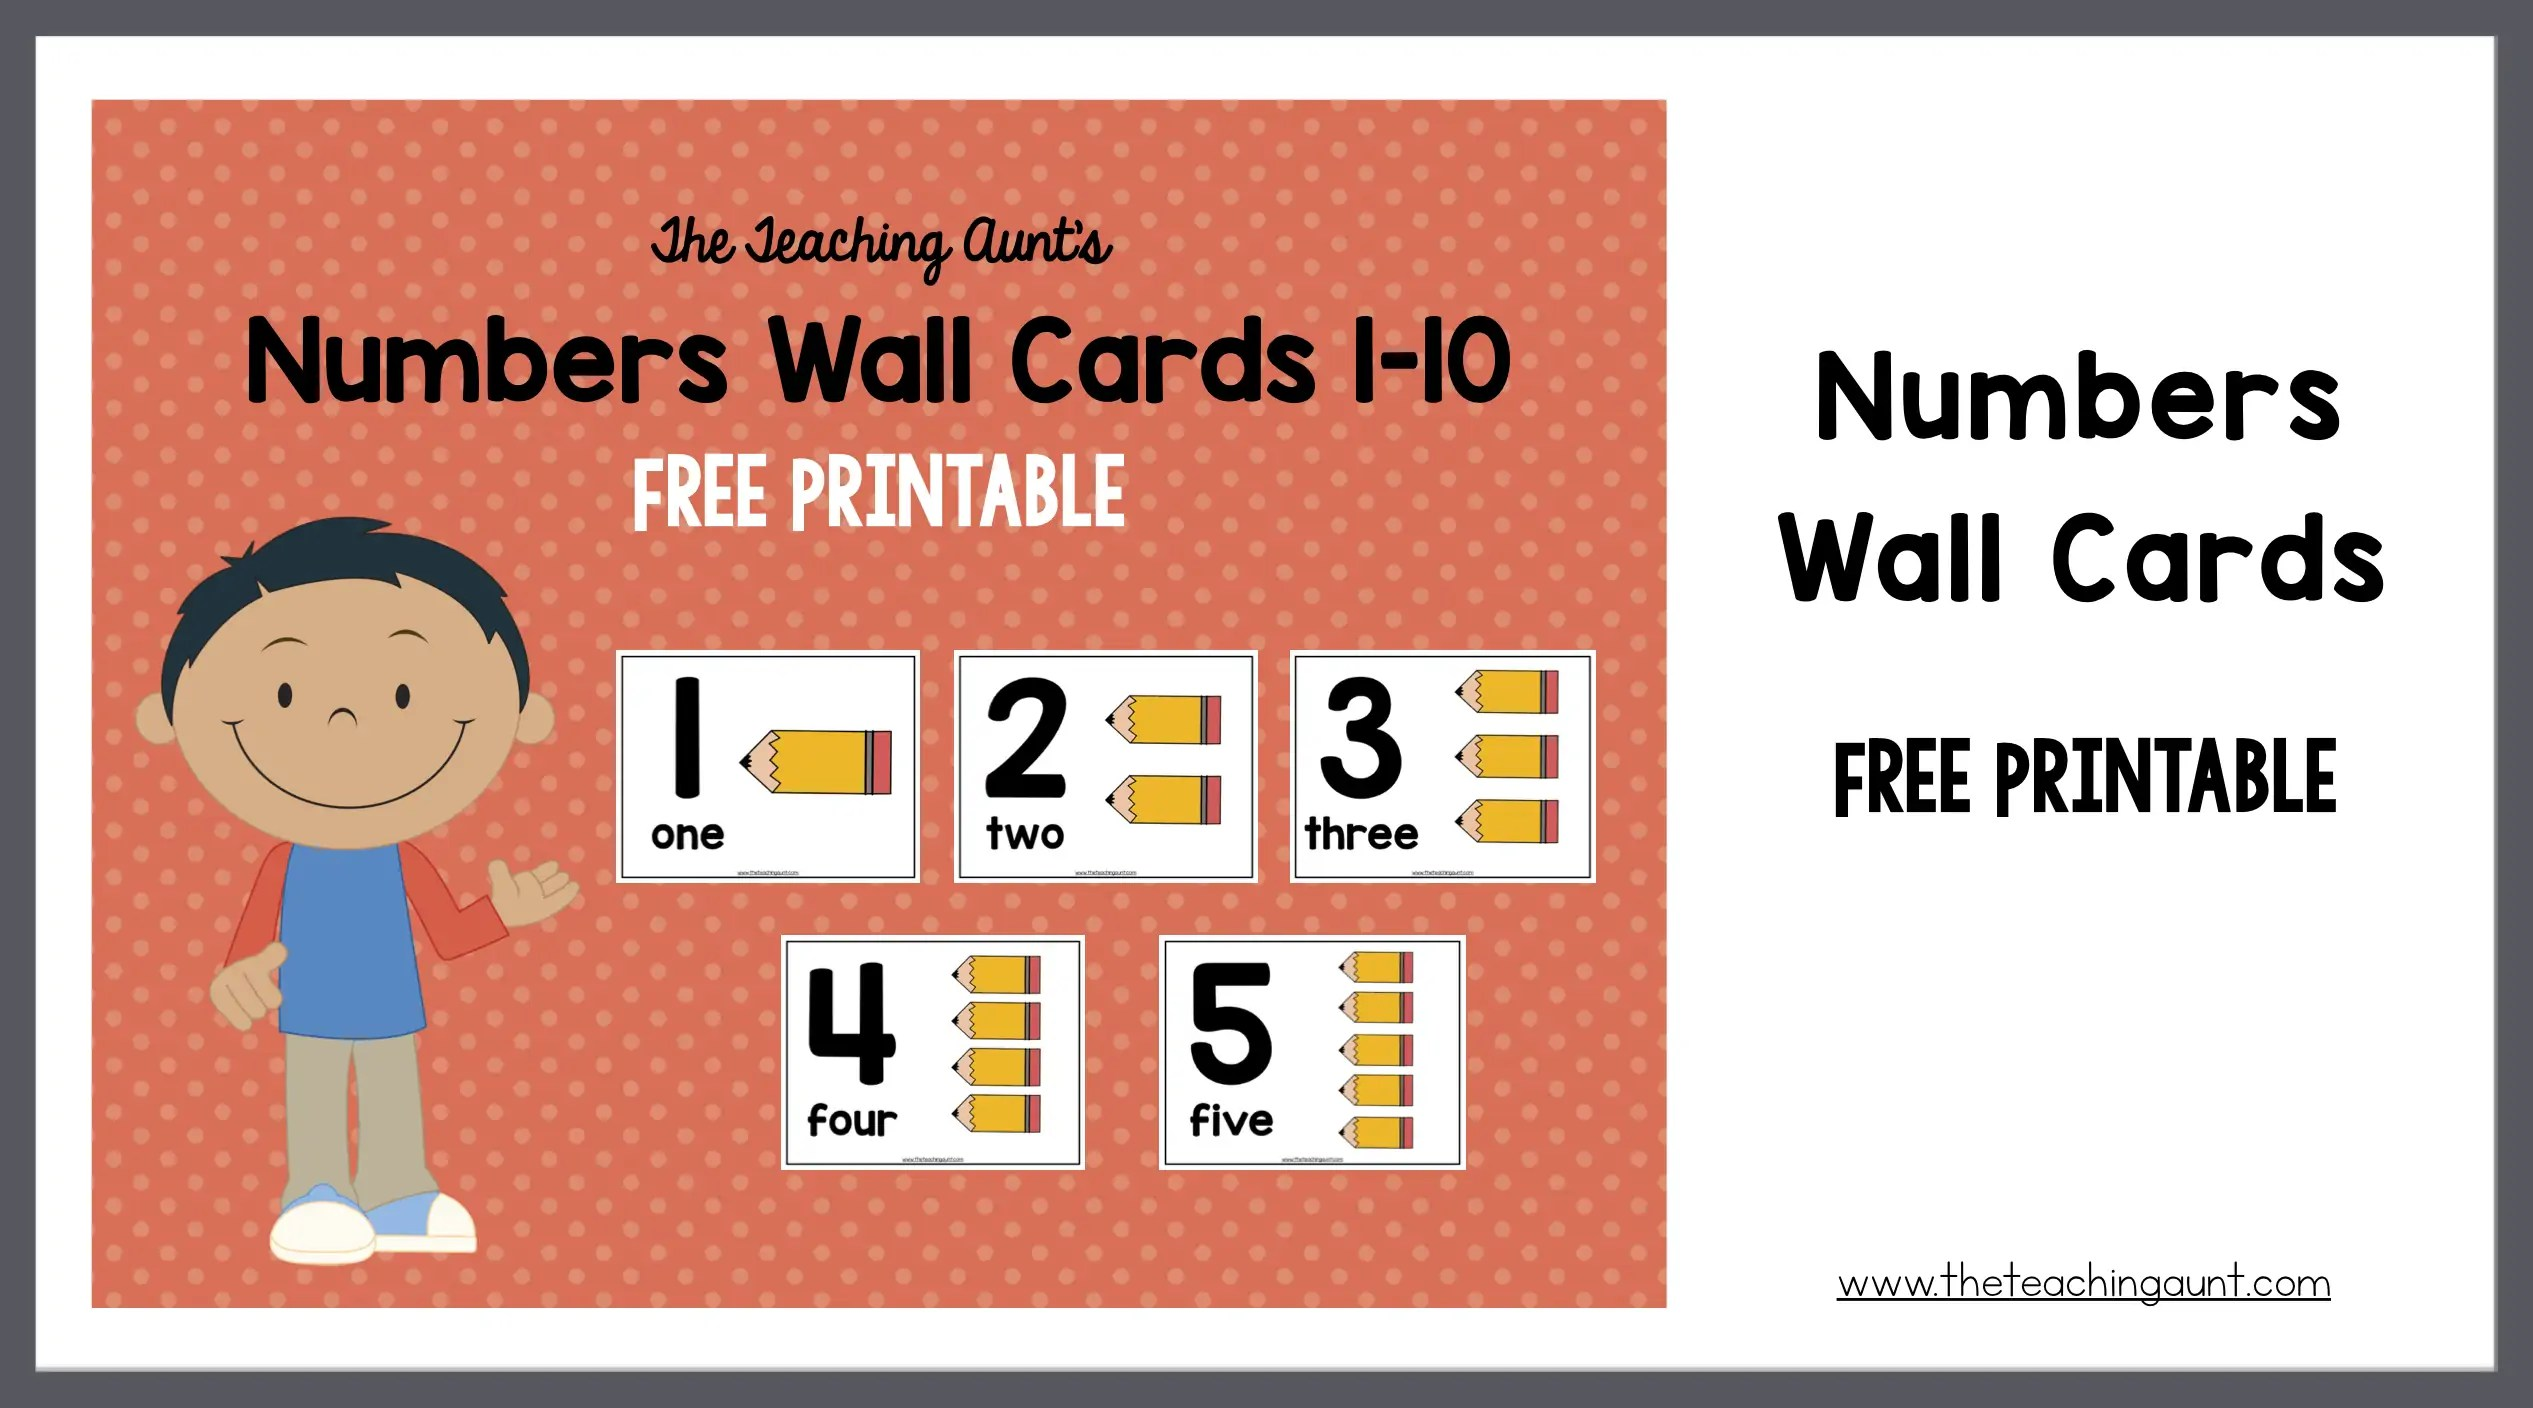 graphic relating to Printable Images named Range Wall Playing cards for Preschoolers - The Training Aunt